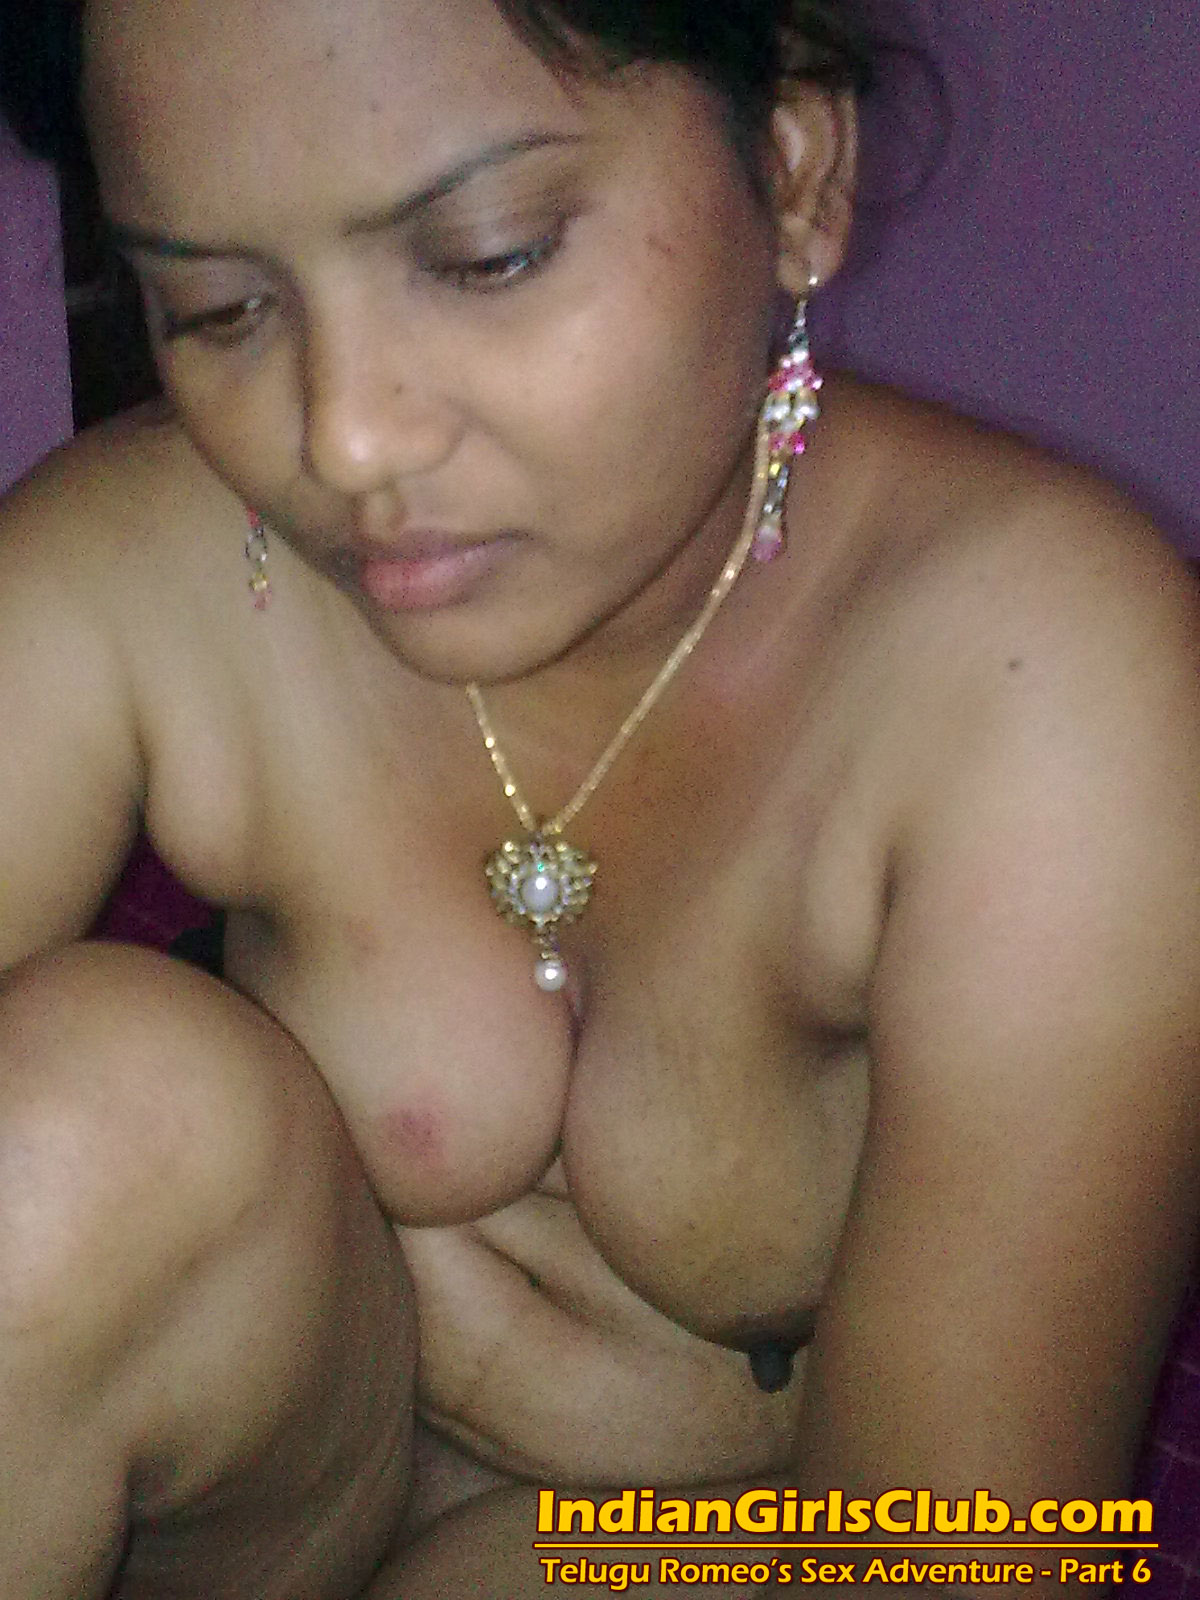 from Walter andhra school girls naked